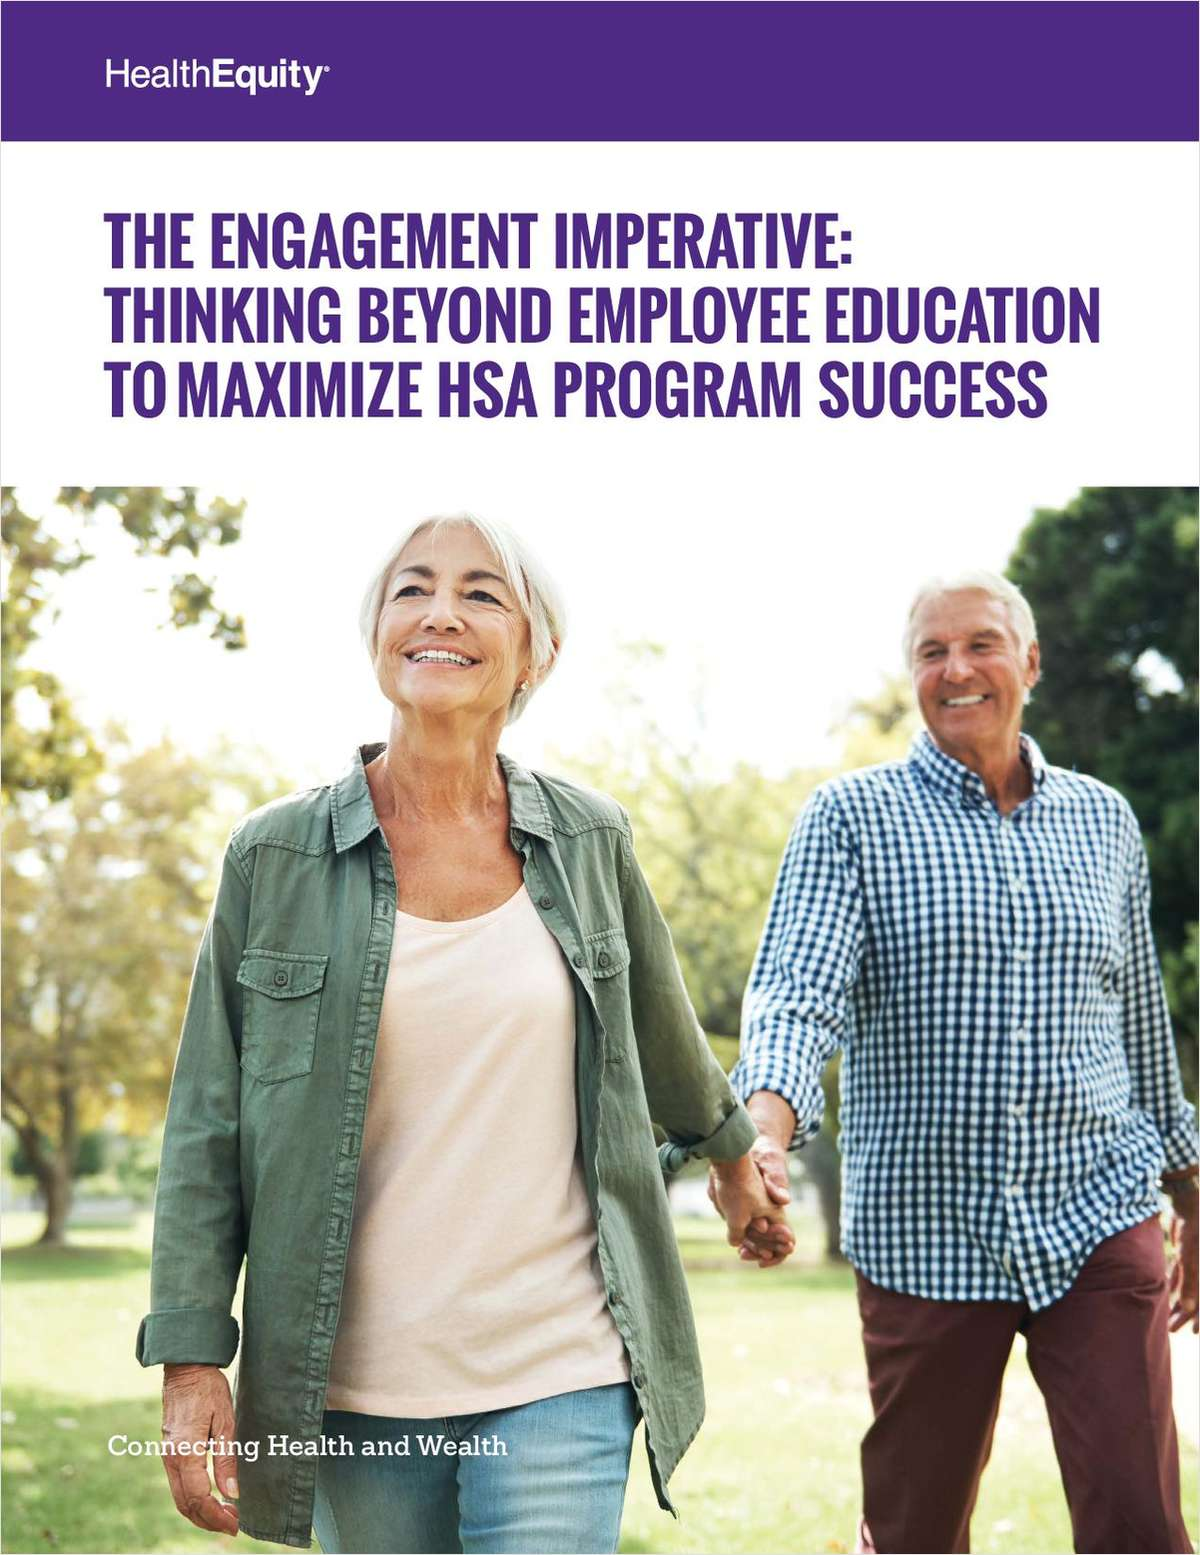 The Engagement Imperative: Thinking Beyond Employee Education to Maximize HSA Program Success